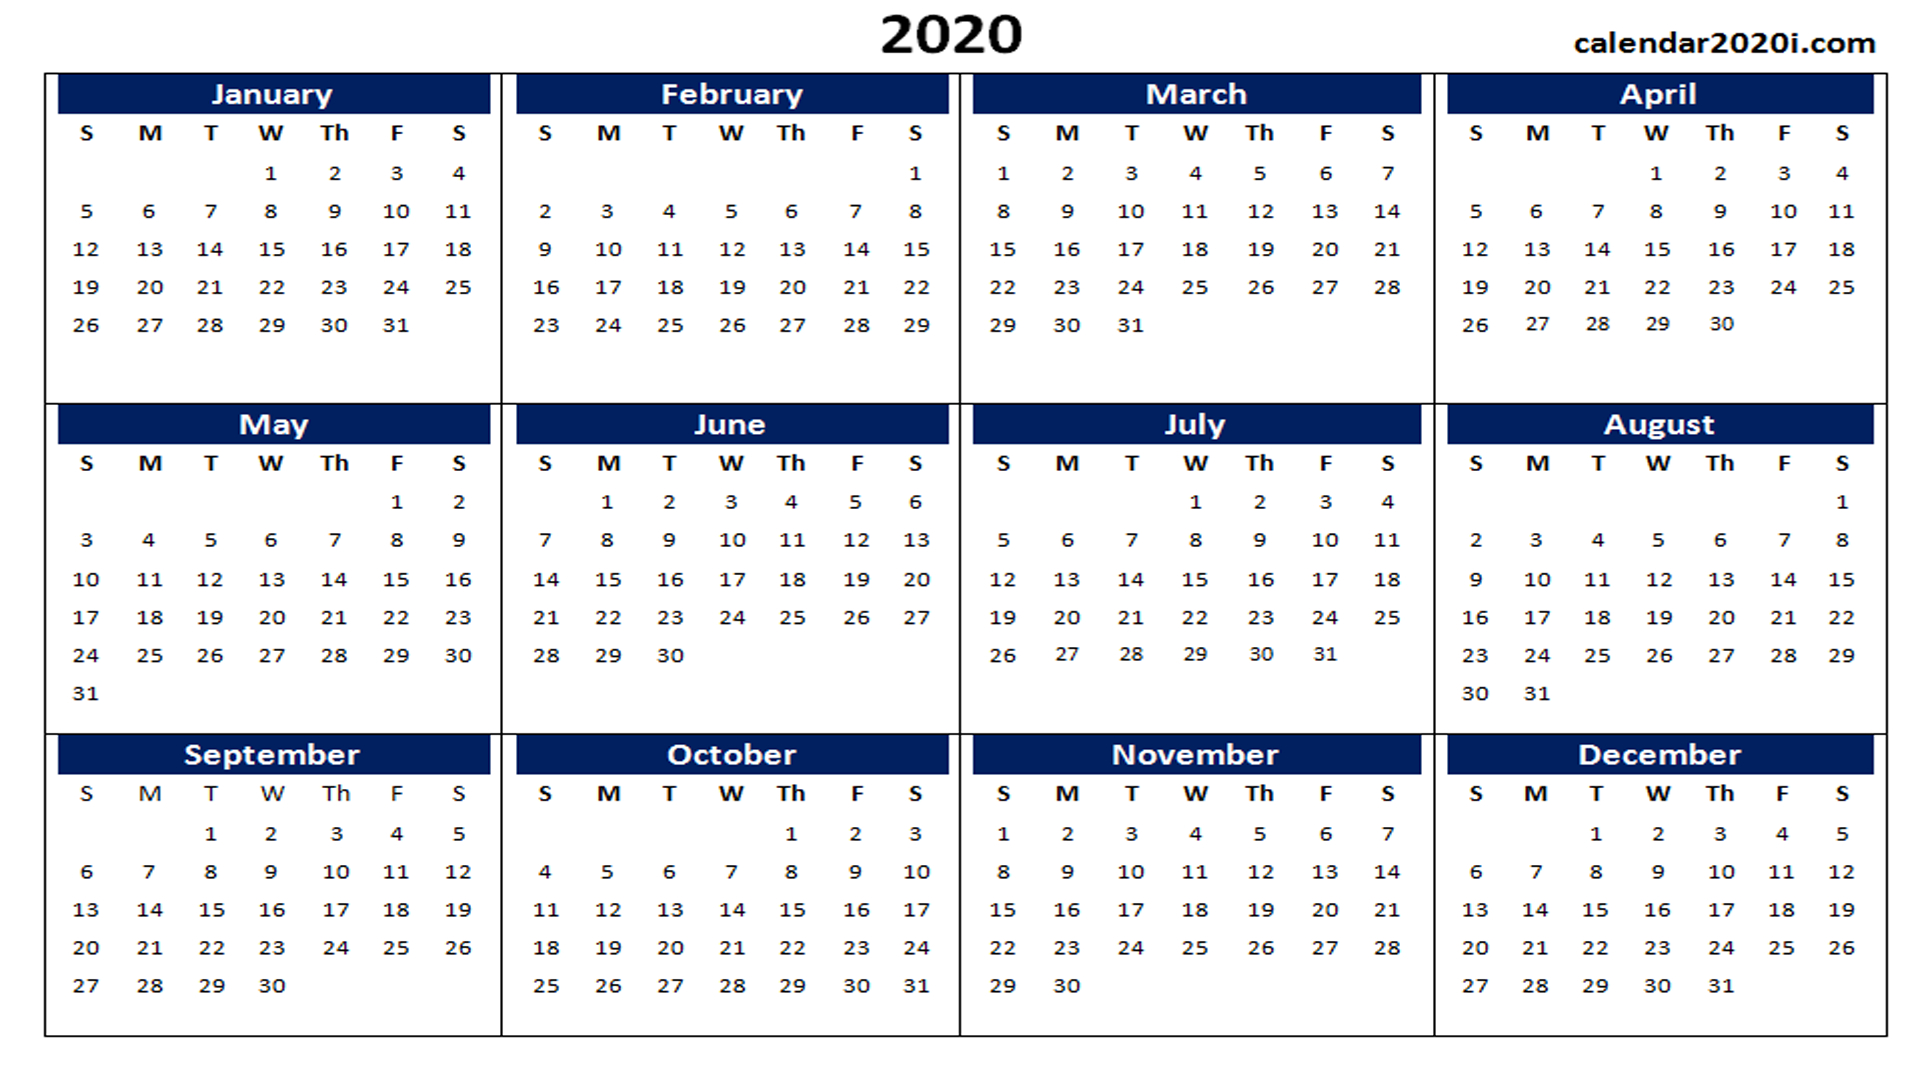 Blank 2020 Calendar Printable Templates | Calendar 2020 intended for Word Calendar Template 2020